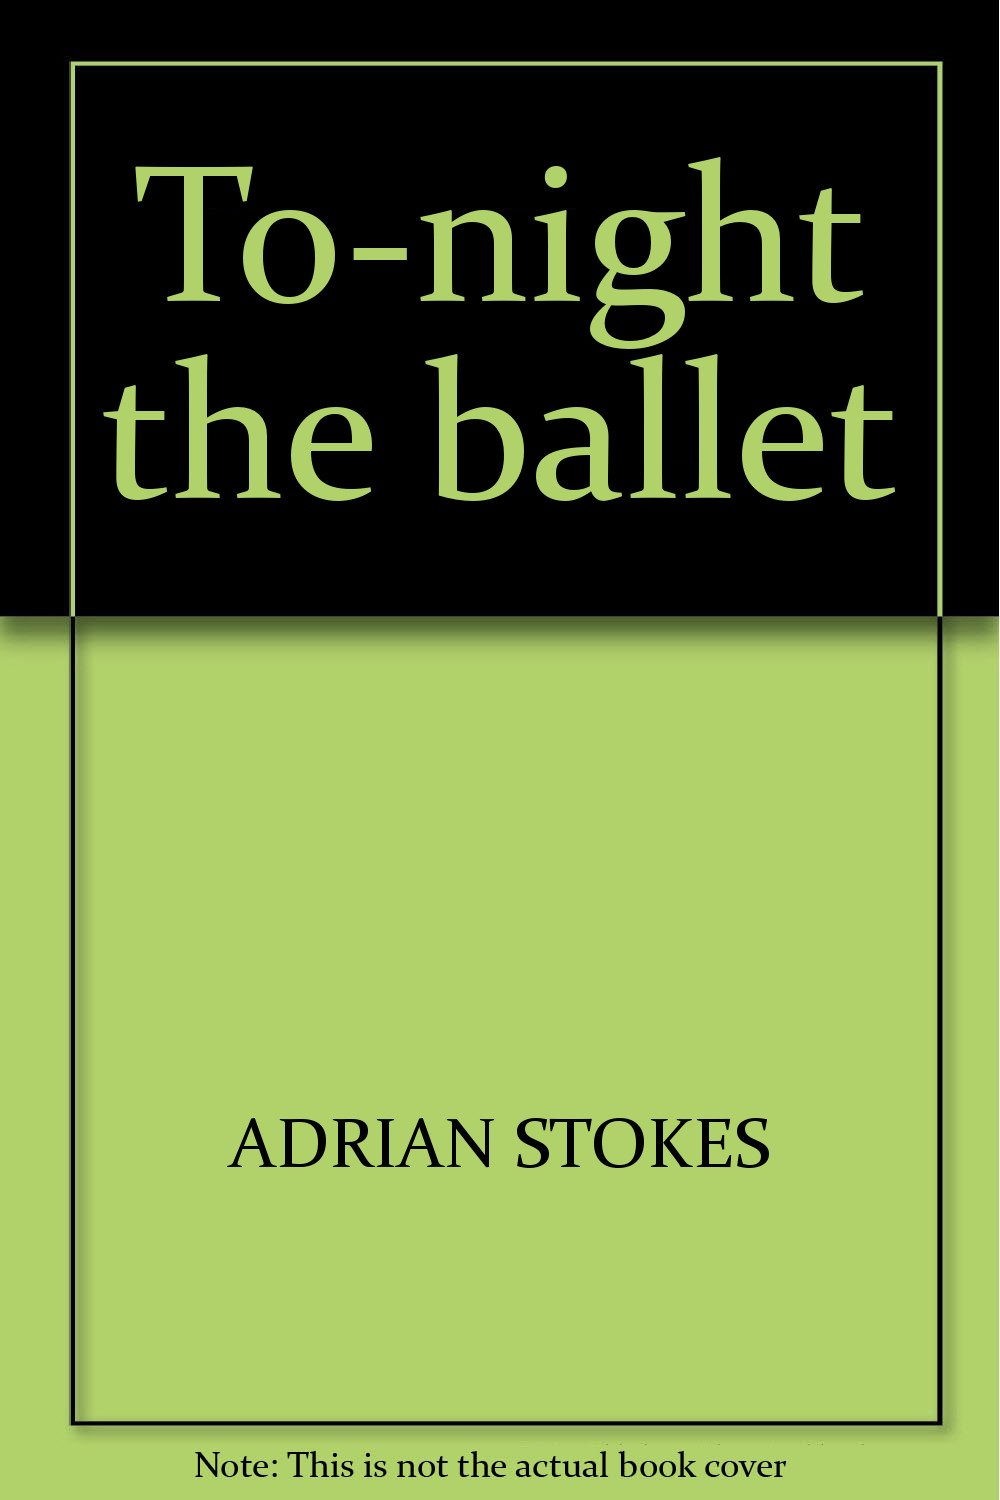 To-night the ballet